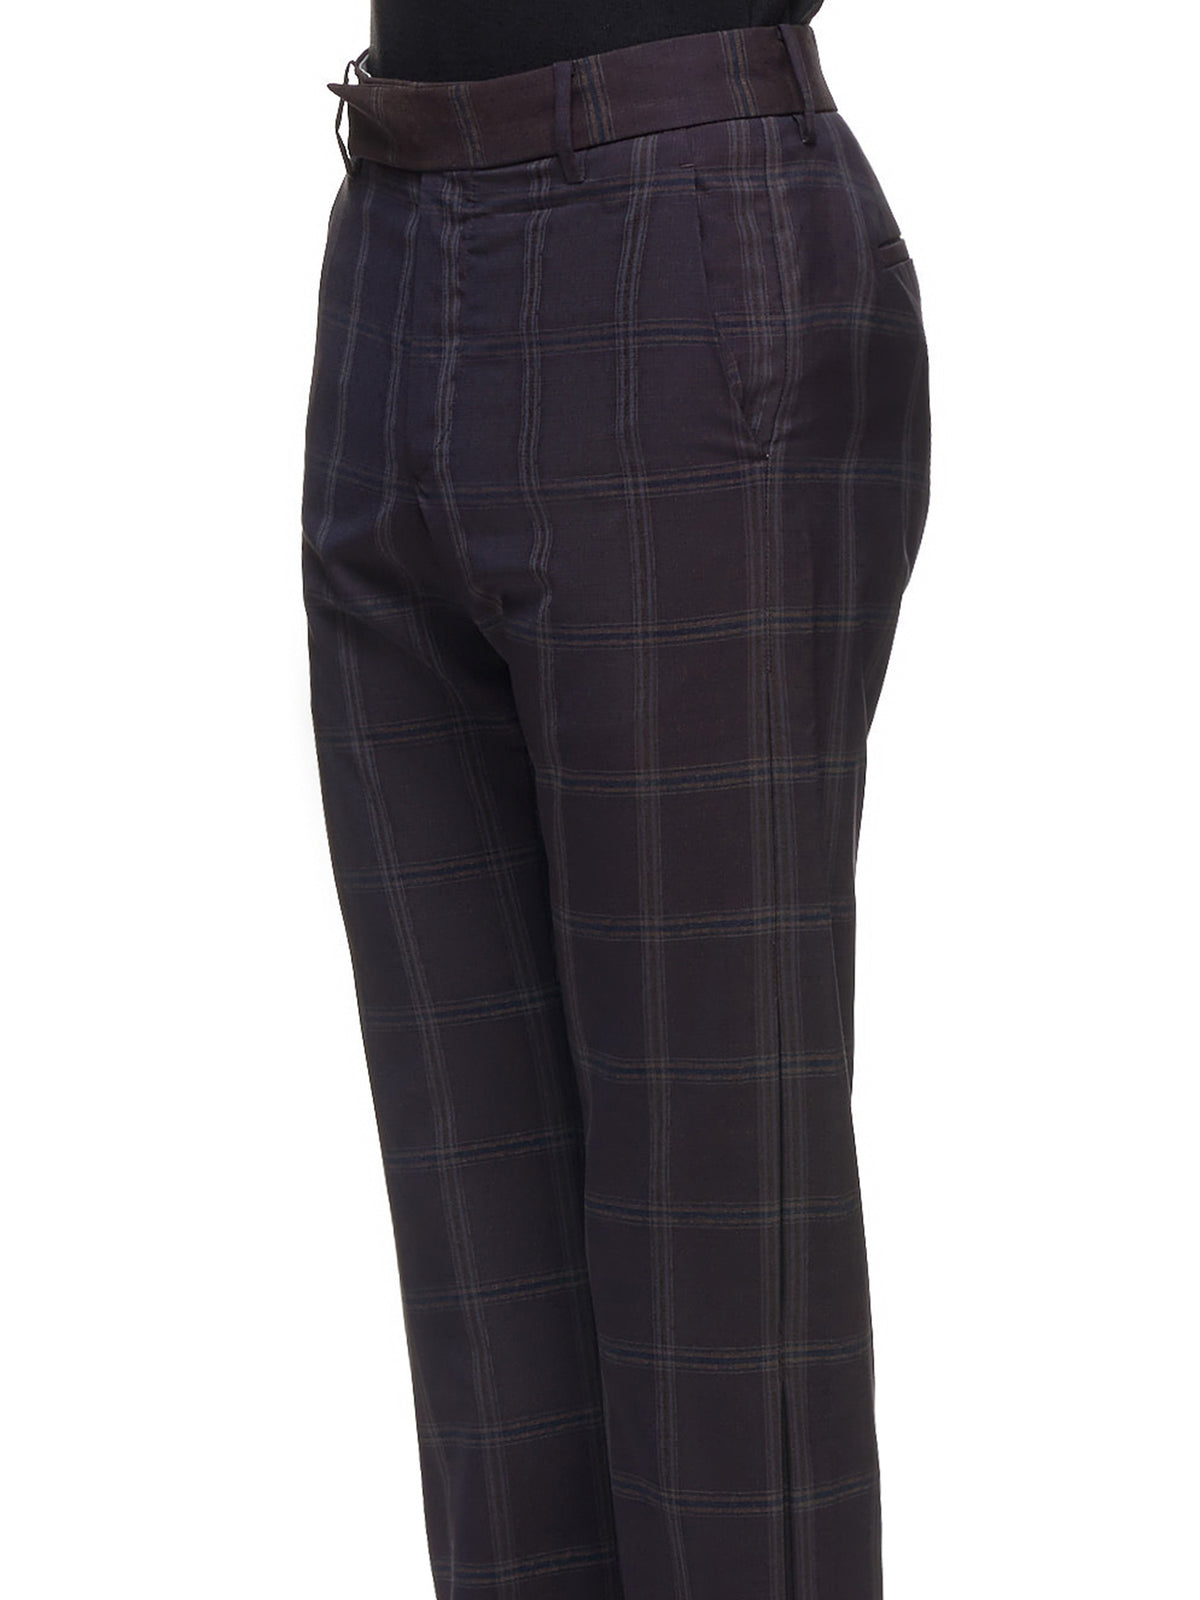 Cornerstone Pants - Hlorenzo Detail 2